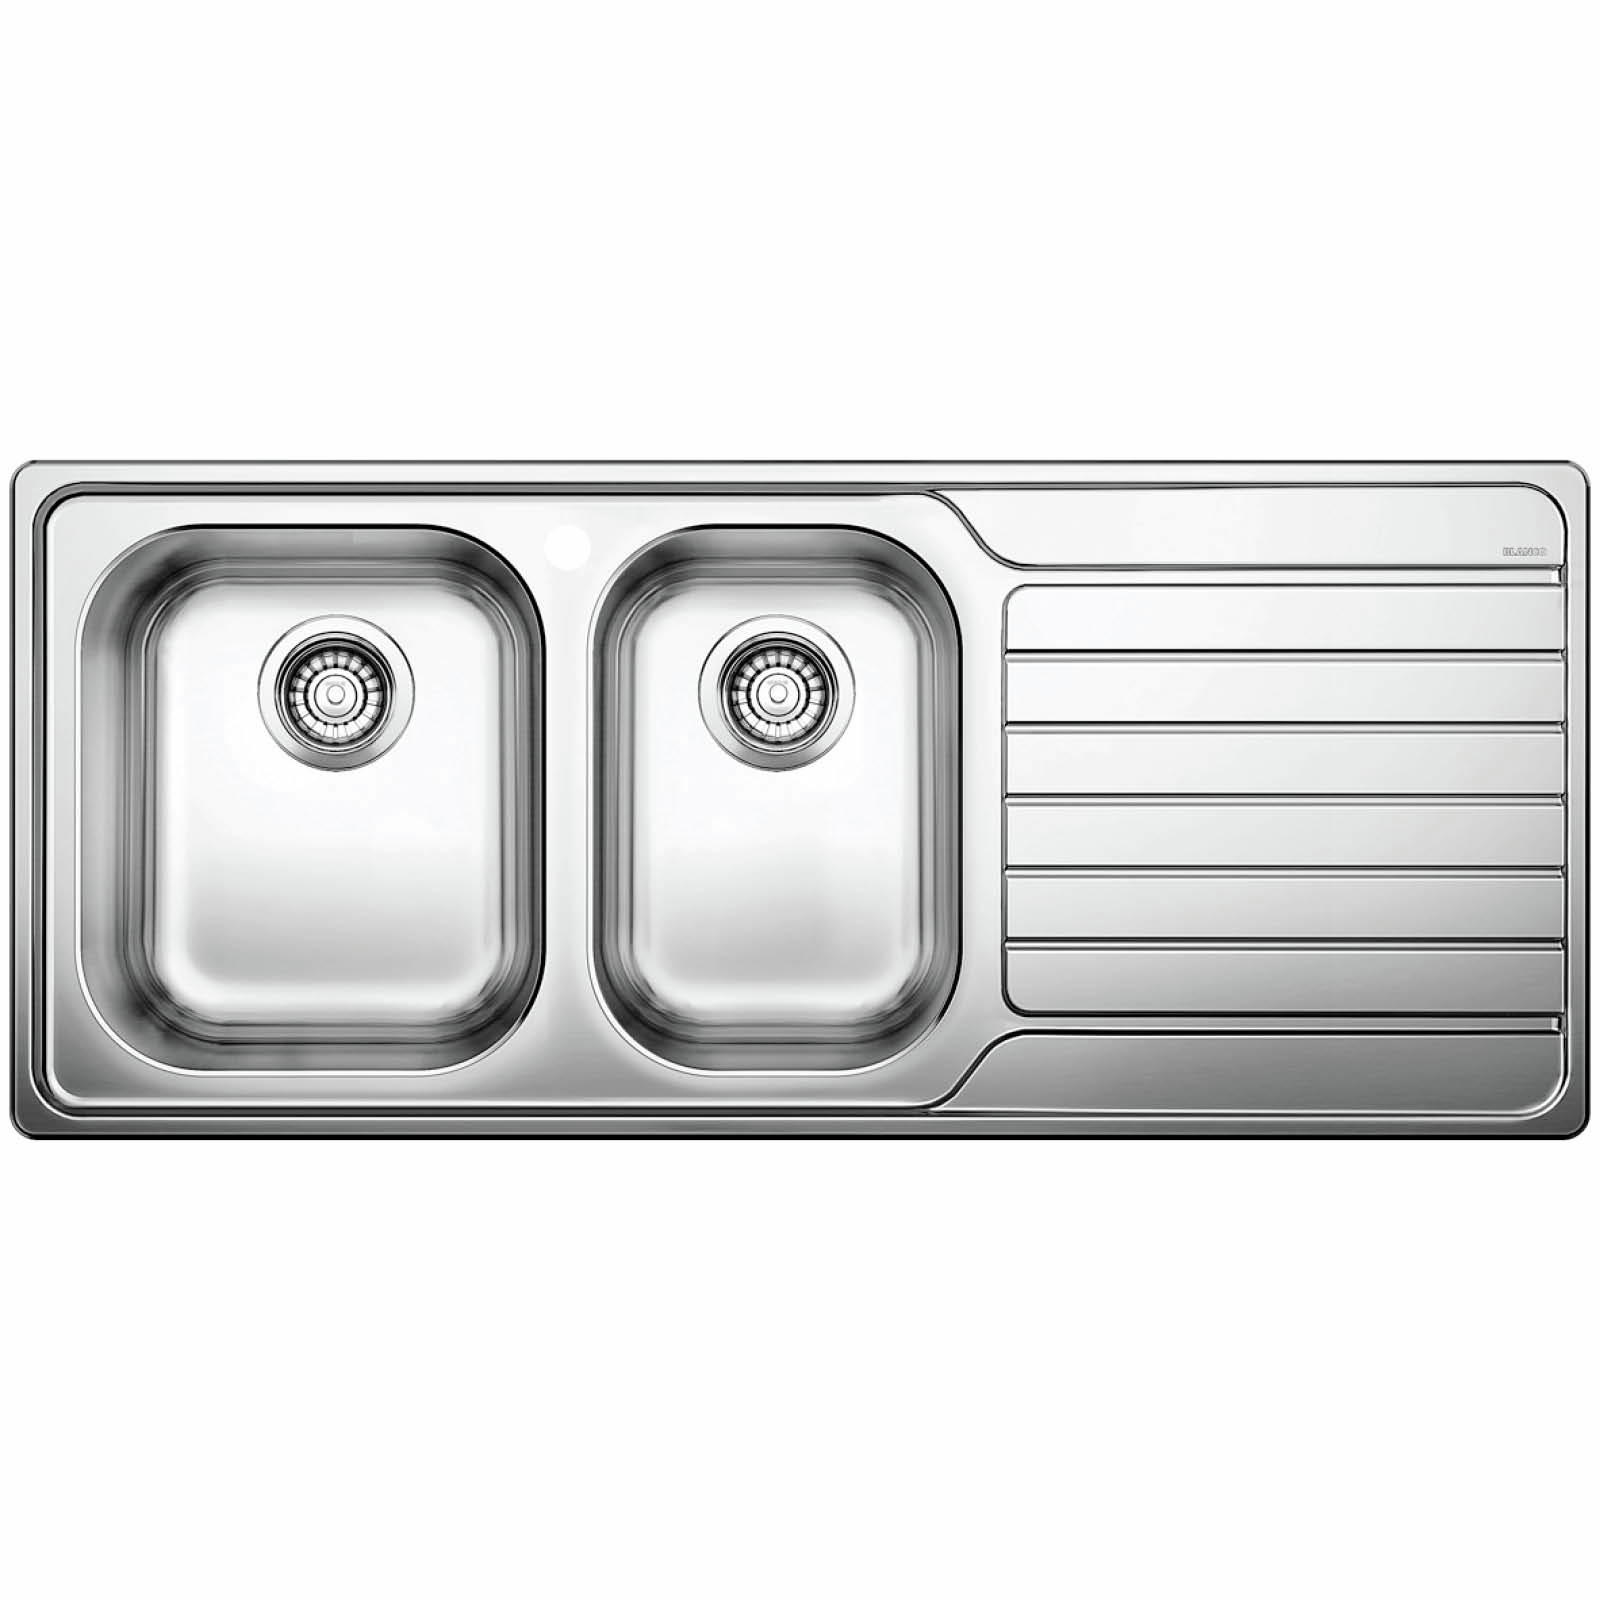 Blanco 1160mm Stainless Steel Dinas 8S Left Hand Bowl Sink